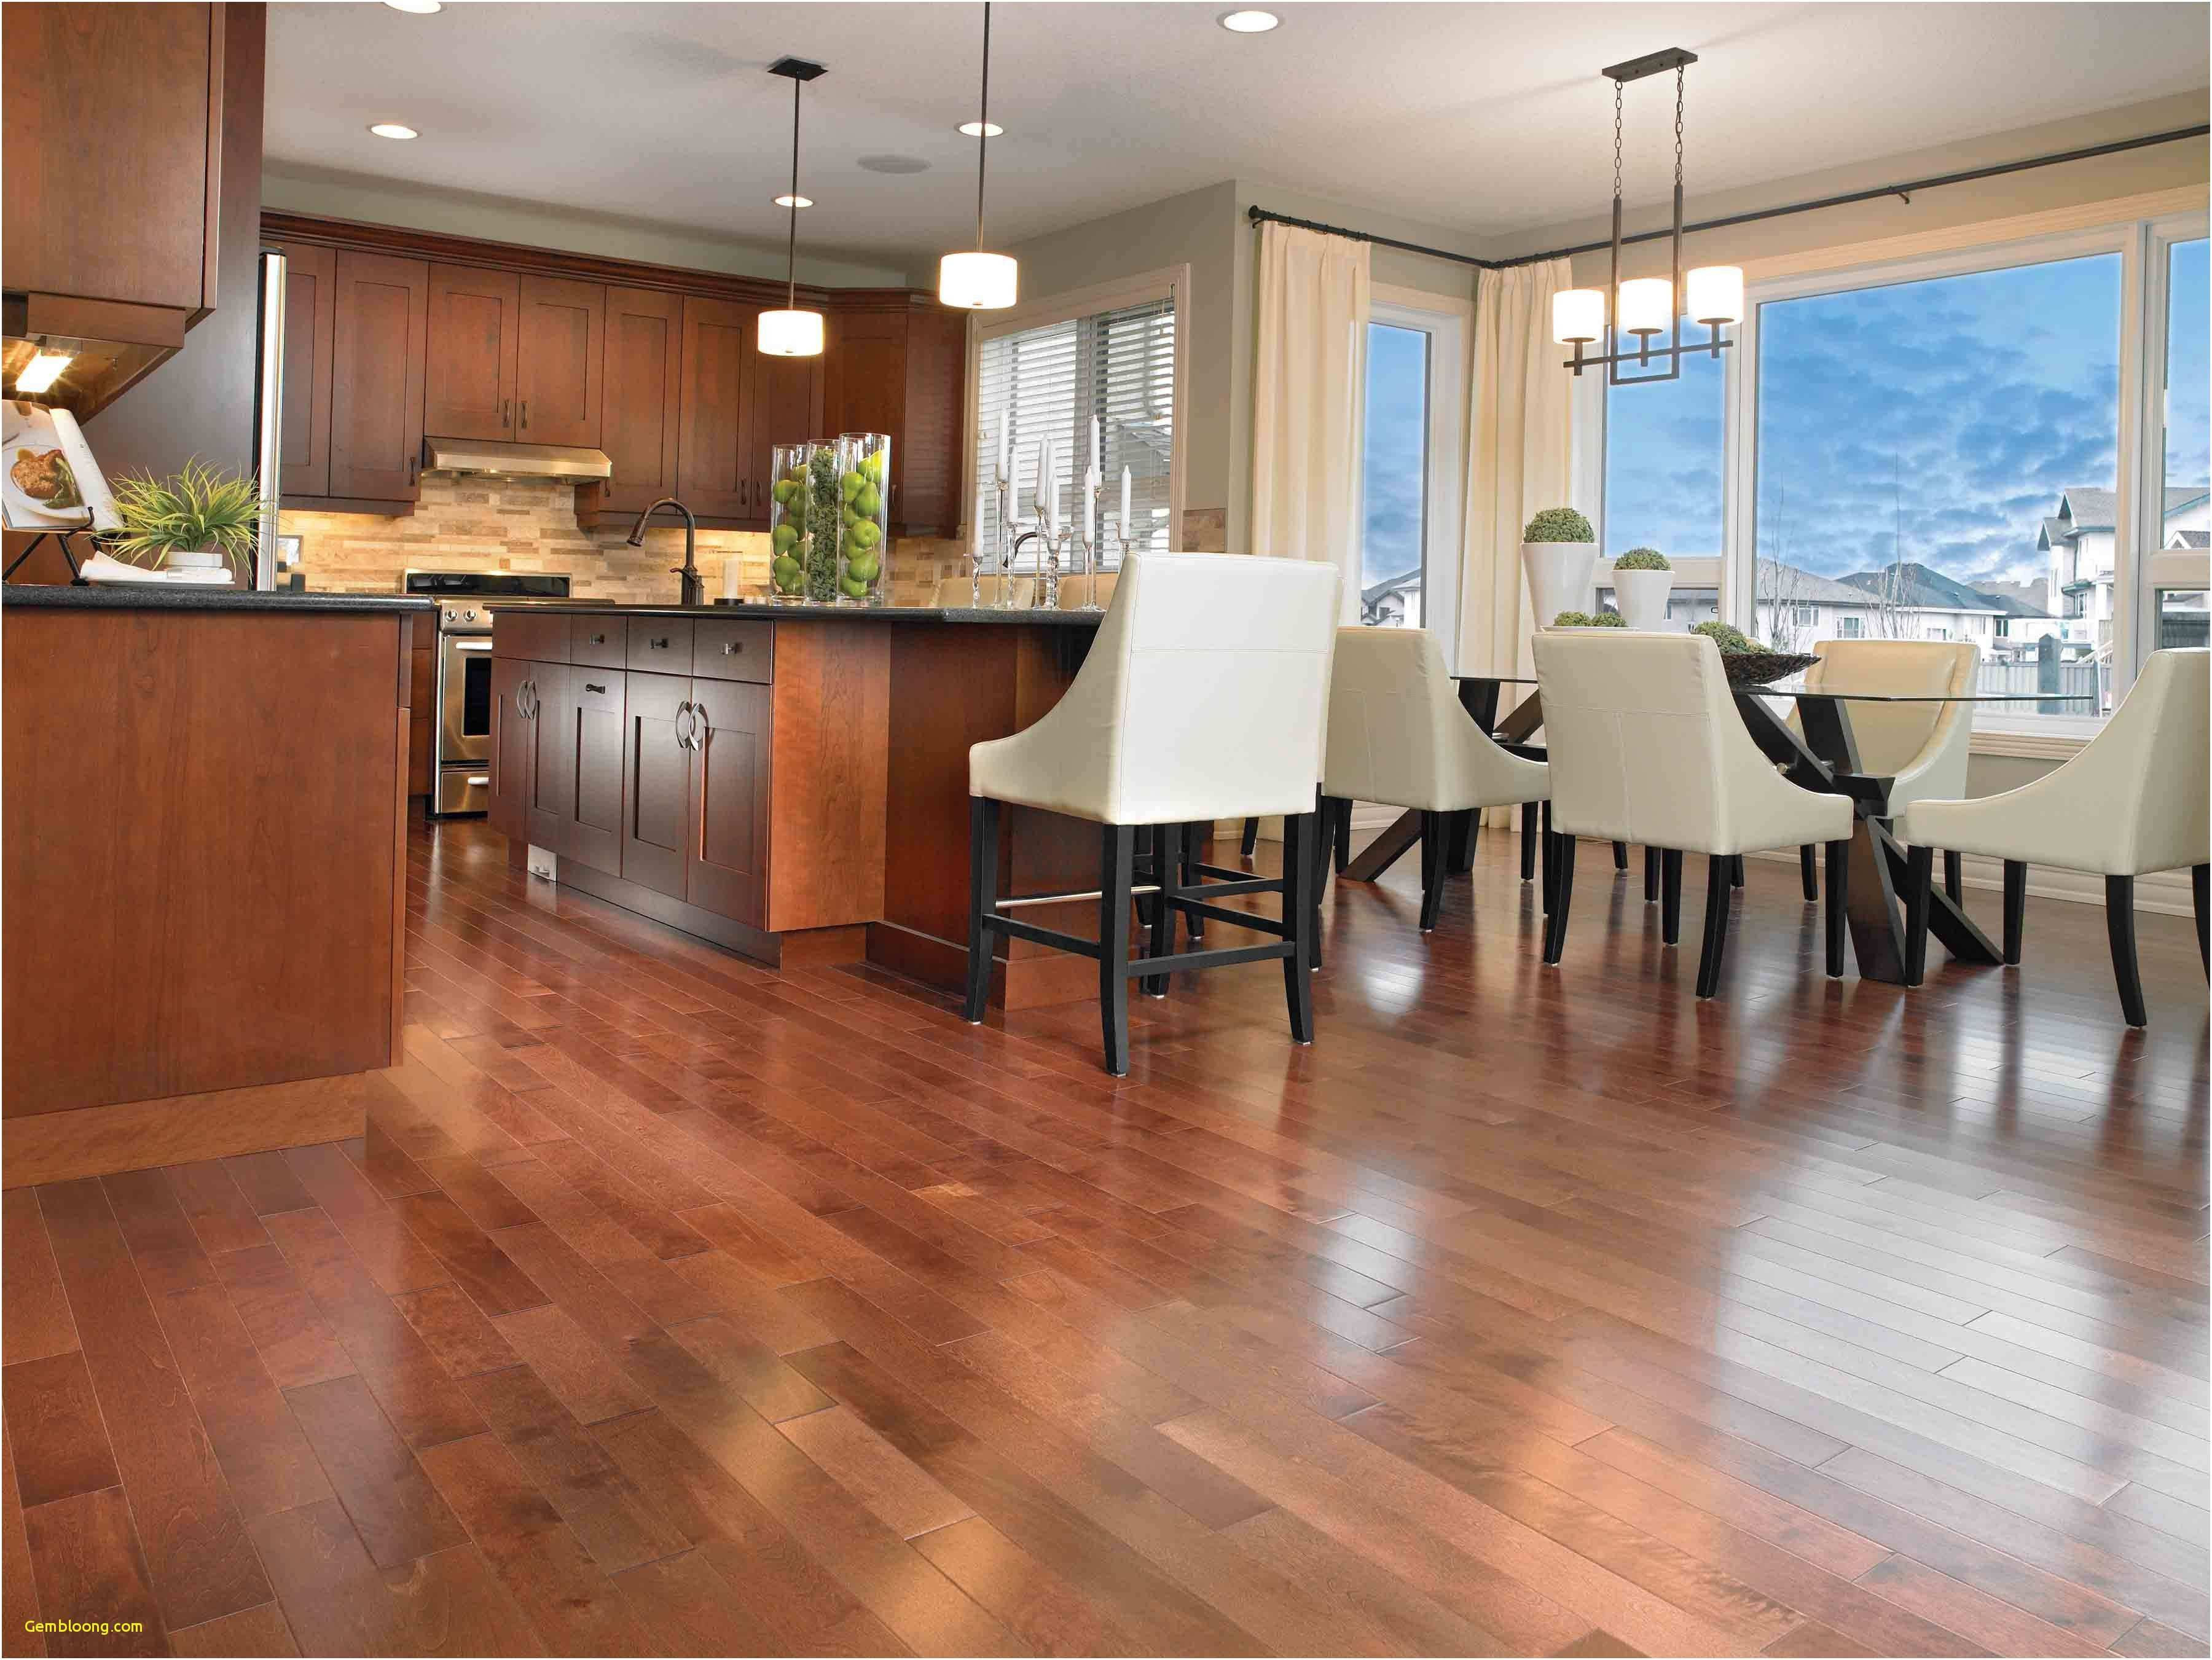 cleaning dark hardwood floors of wood for floors facesinnature in furniture wood floors flooring nj furniture design hard wood flooring new 0d grace place